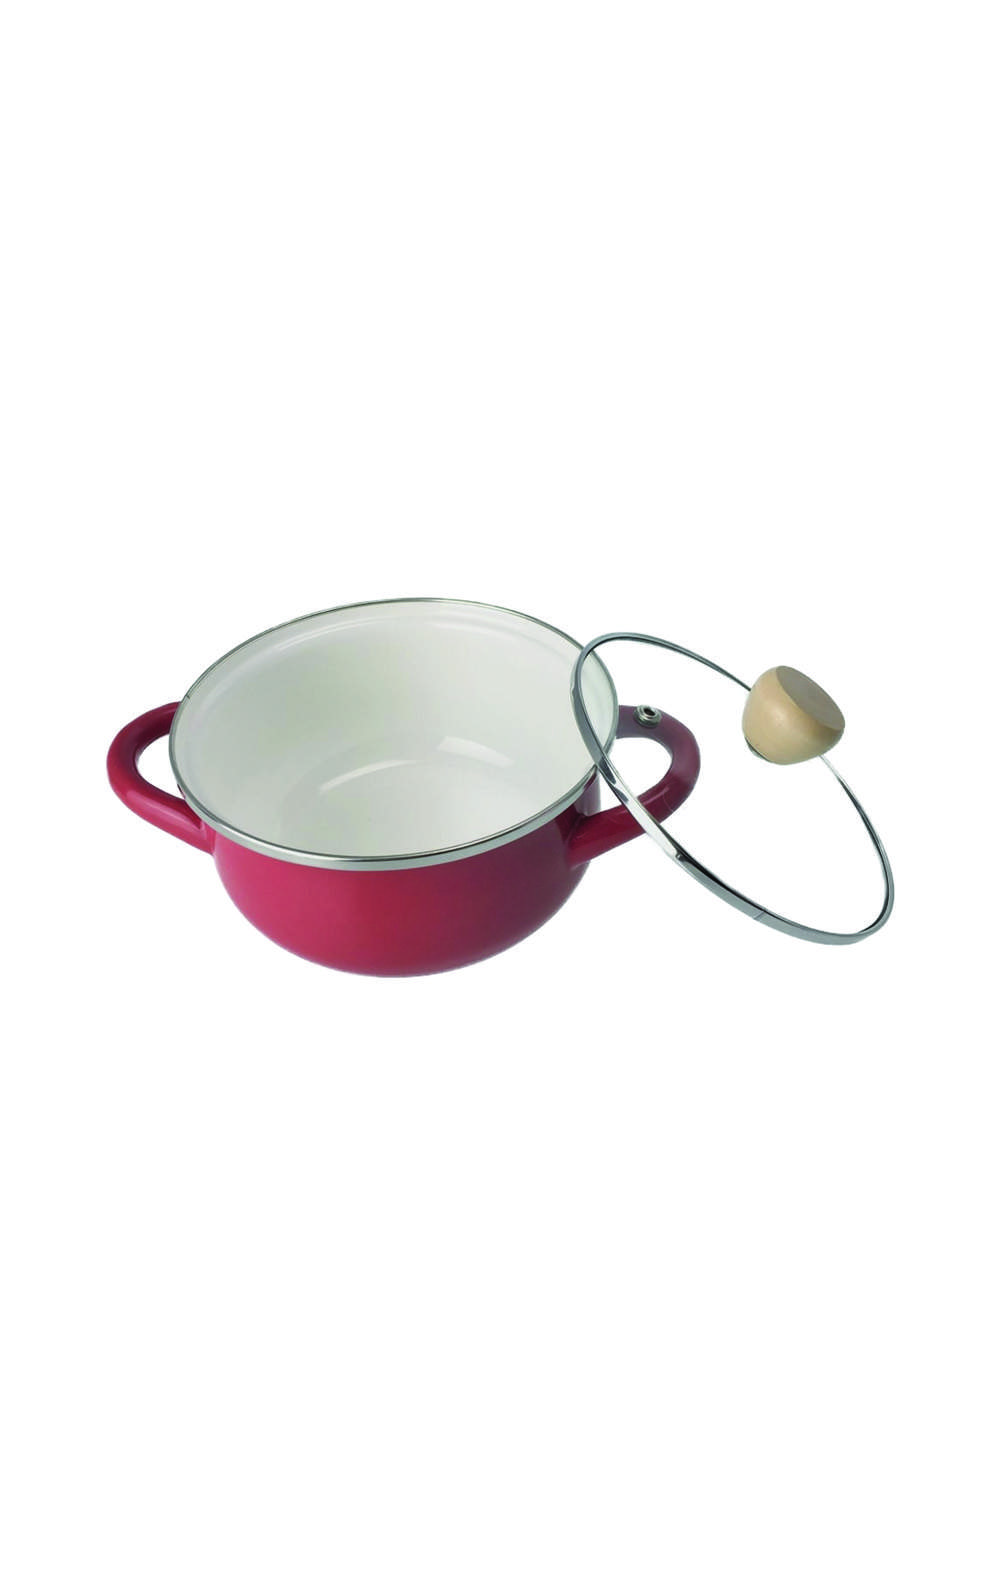 Enamel  HB-4894  two-handed pan 15cm Red قدر